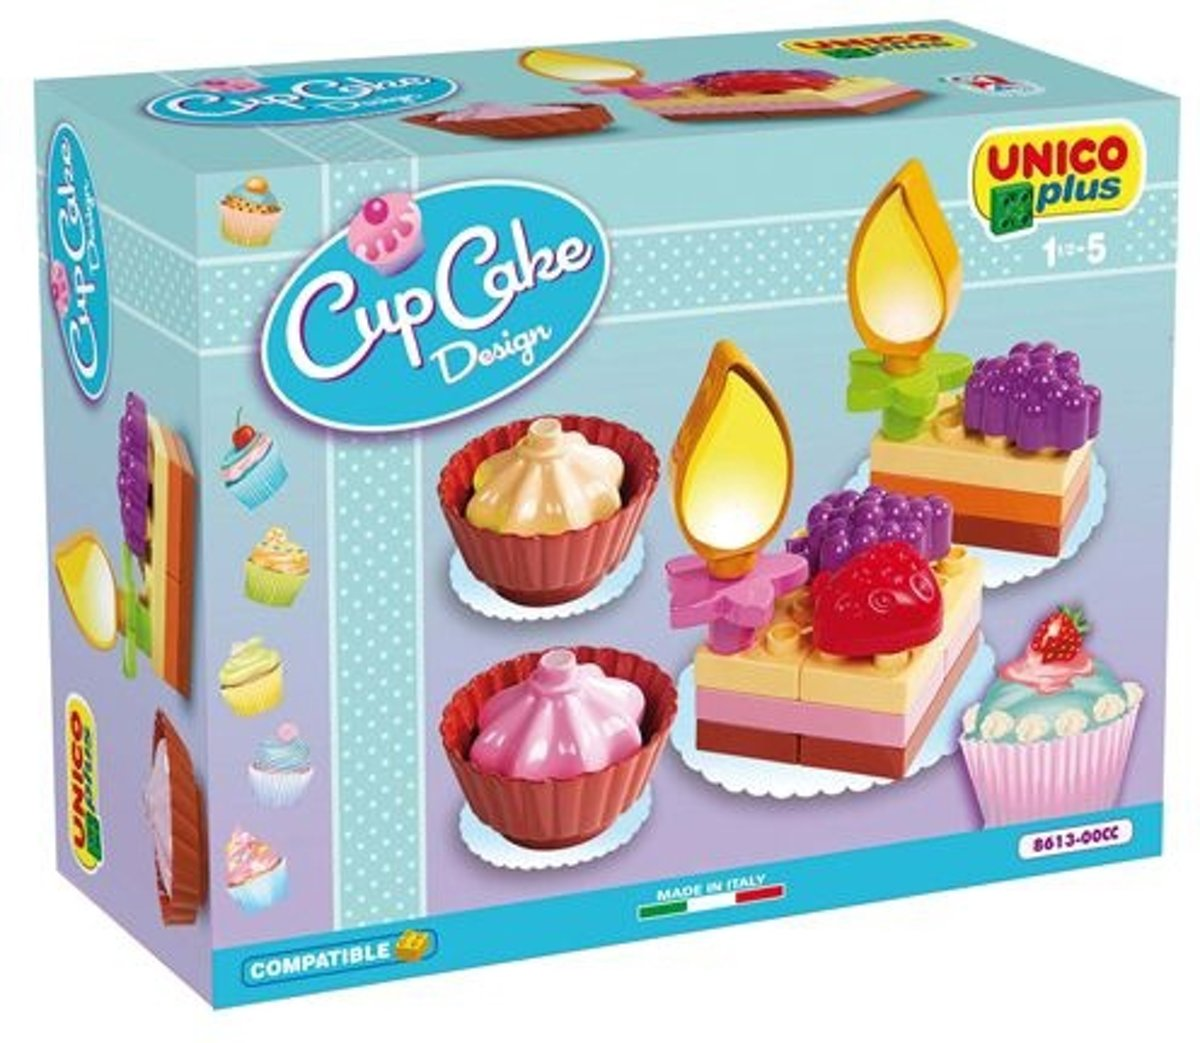 Unico Cup Cake